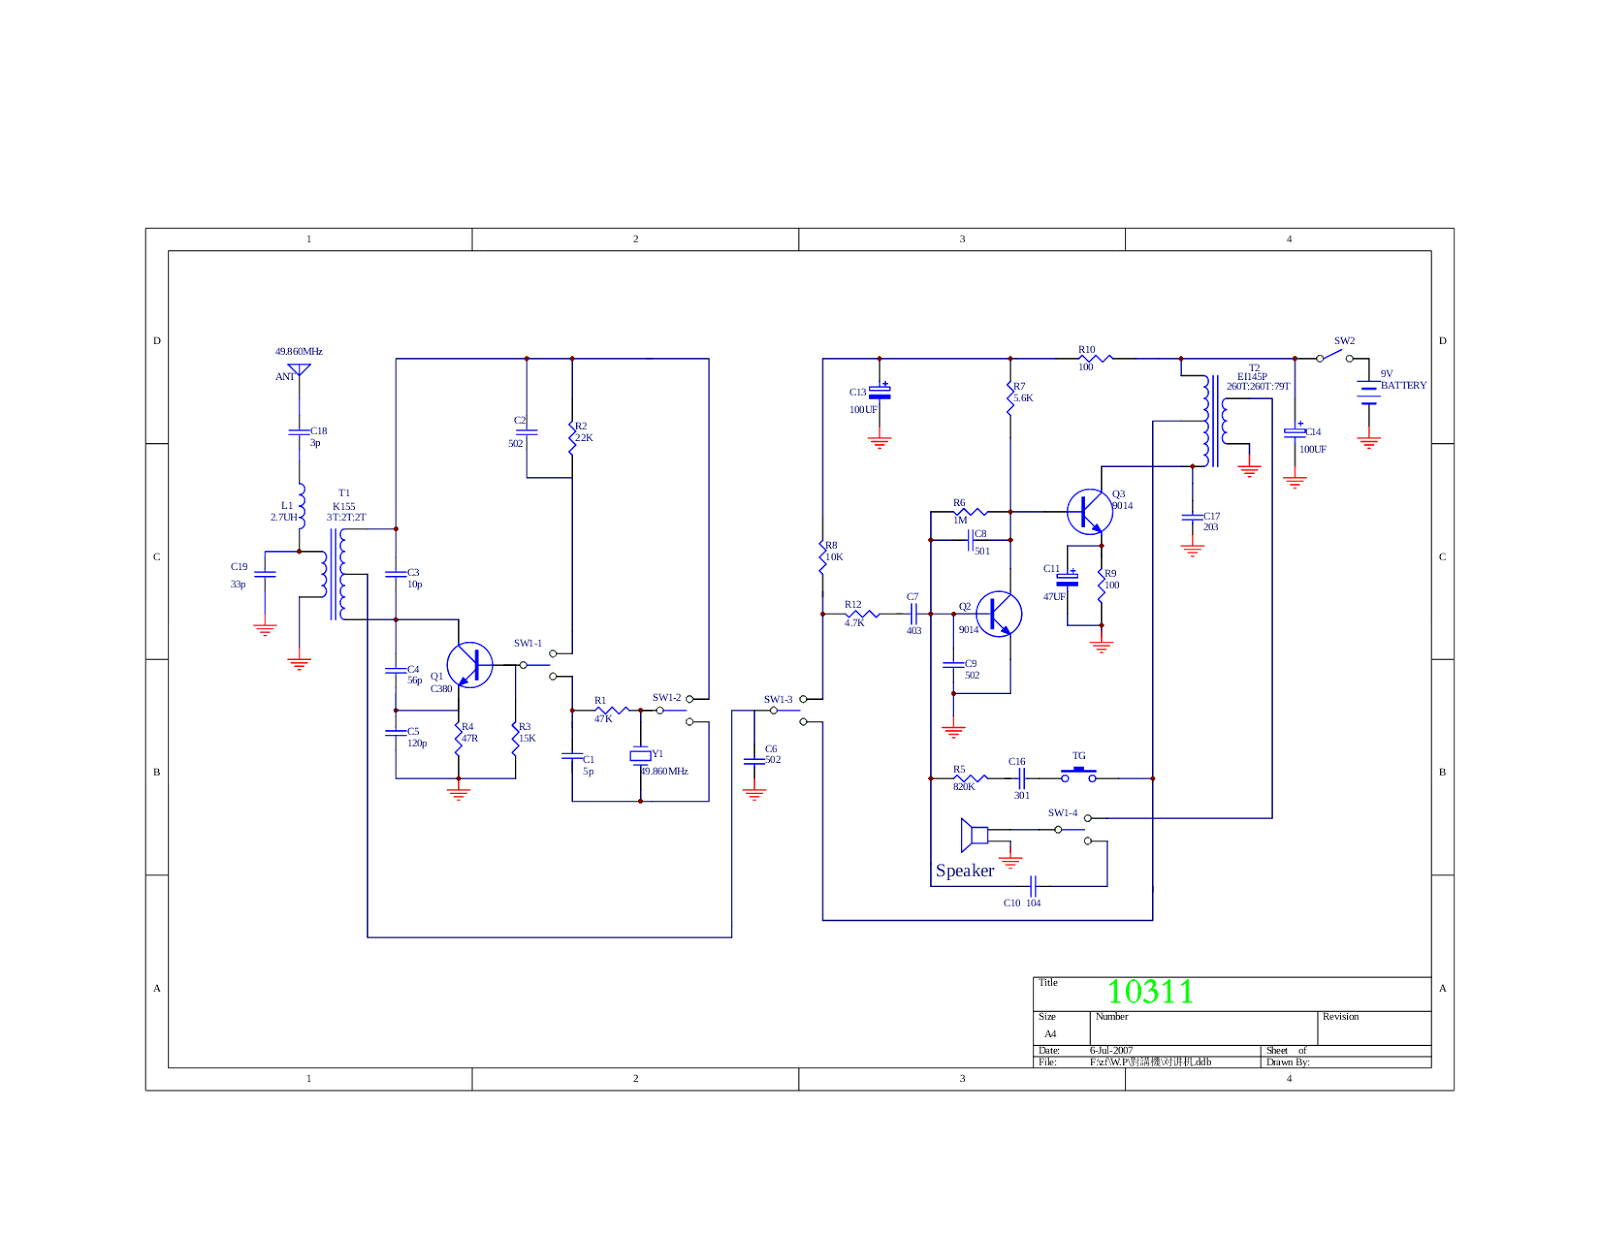 Simple walkie talkie circuit diagram easy to build simple this simple walkie talkie circuit is very easy to build for your home made walkie talkie project ccuart Choice Image